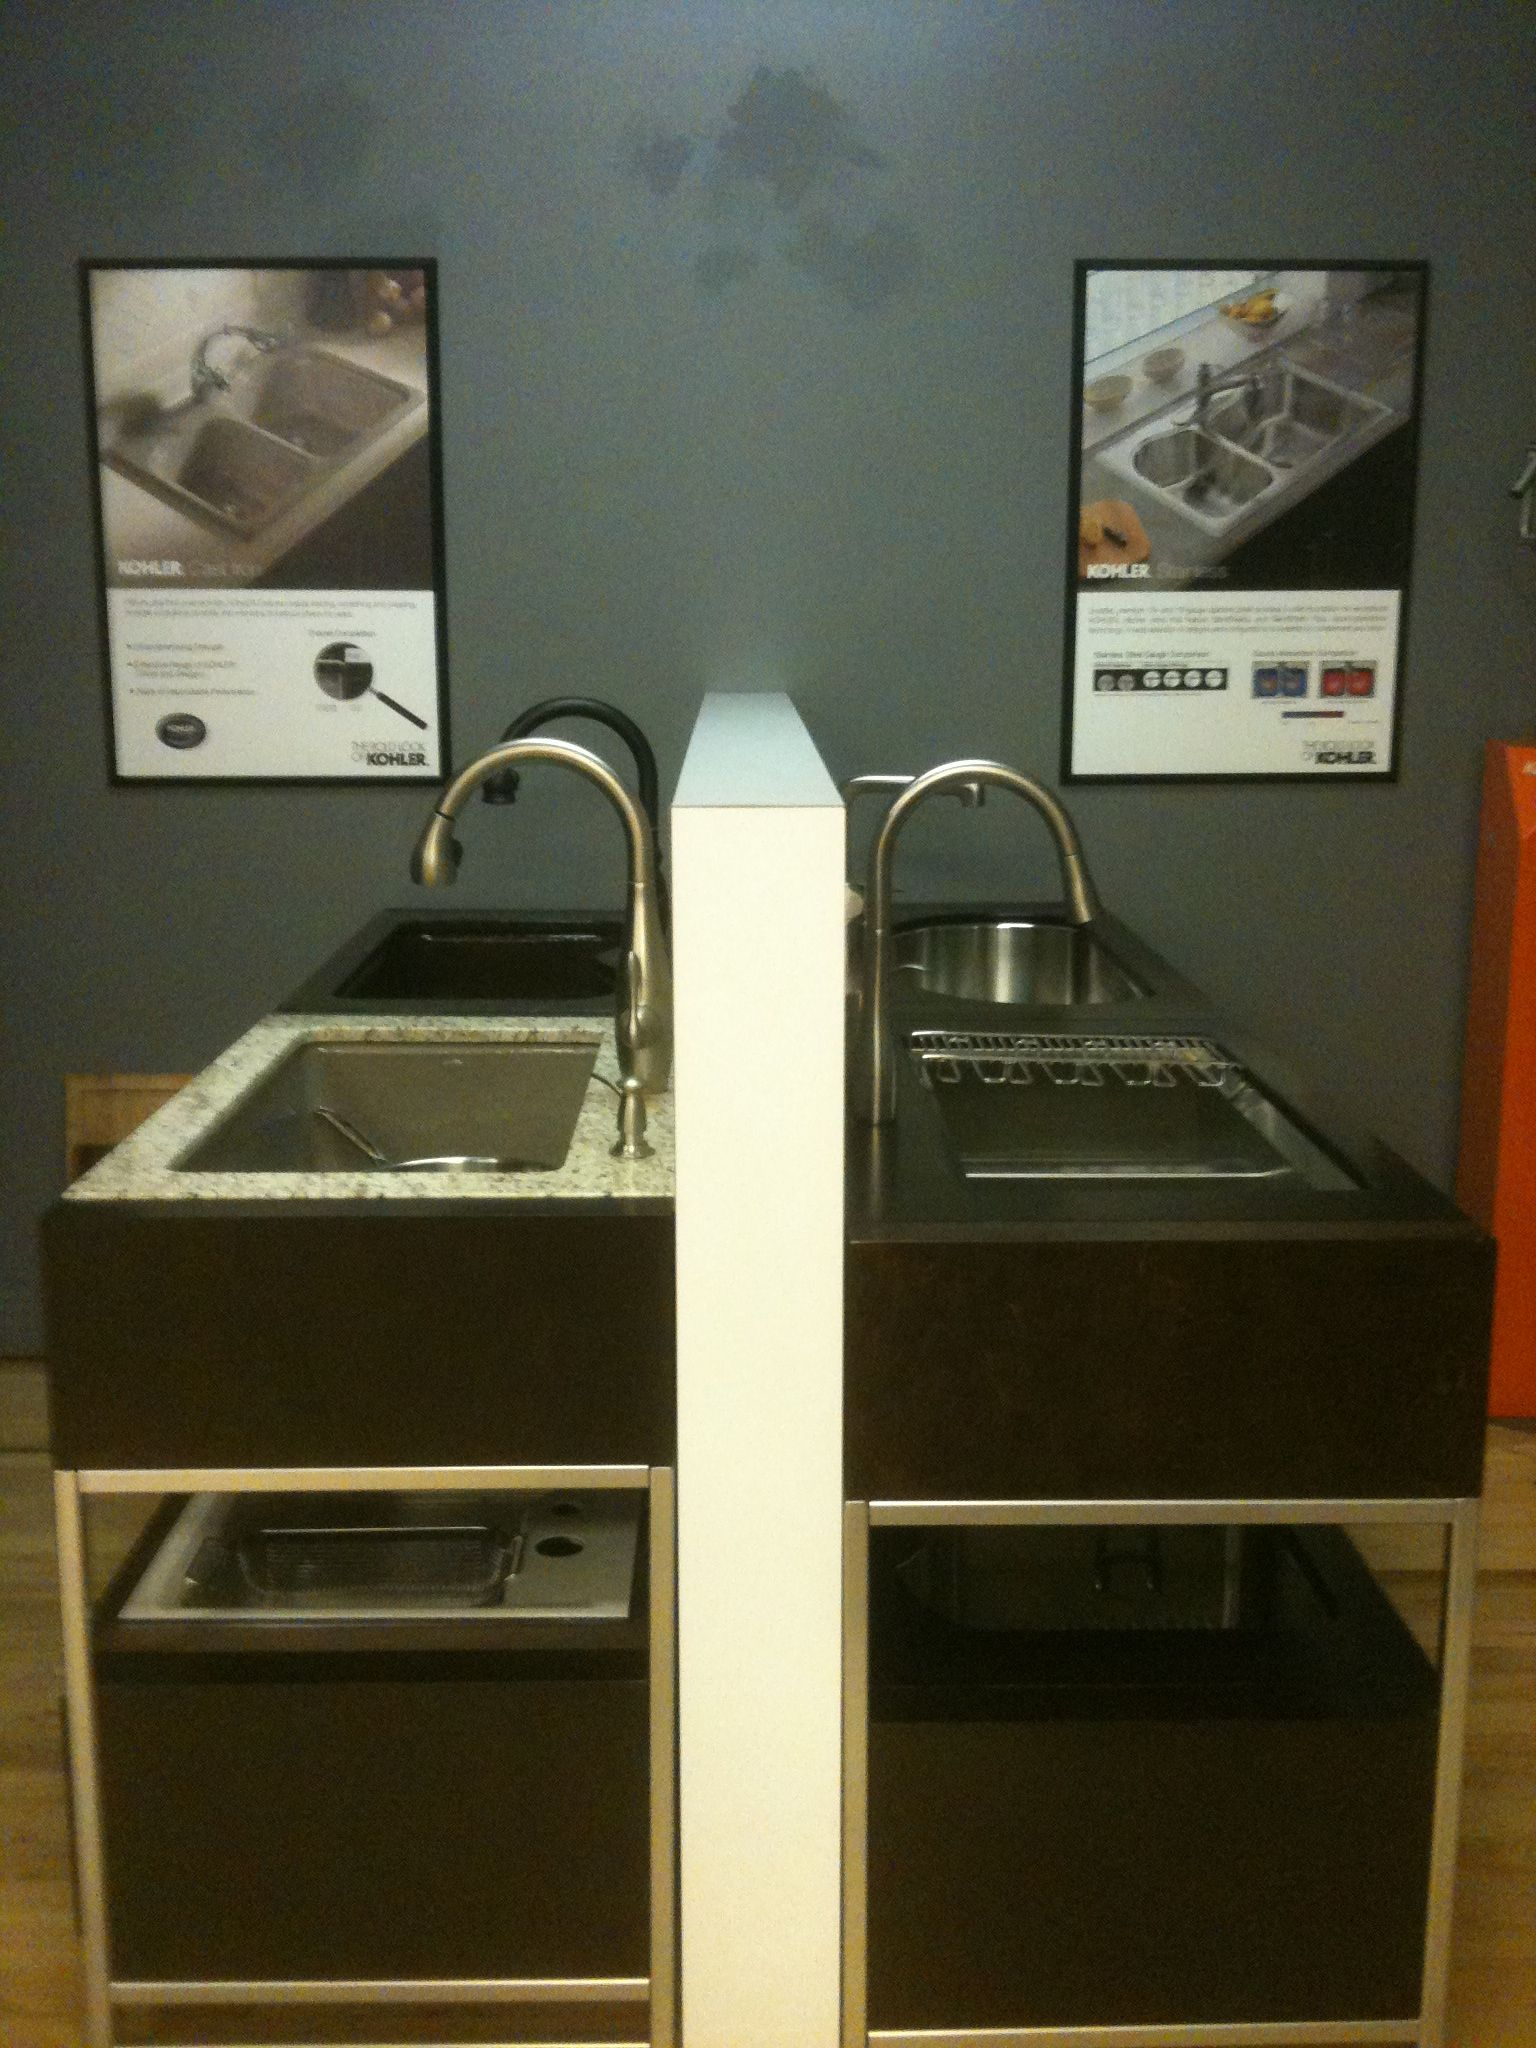 Kohler Kitchen Sink Displays